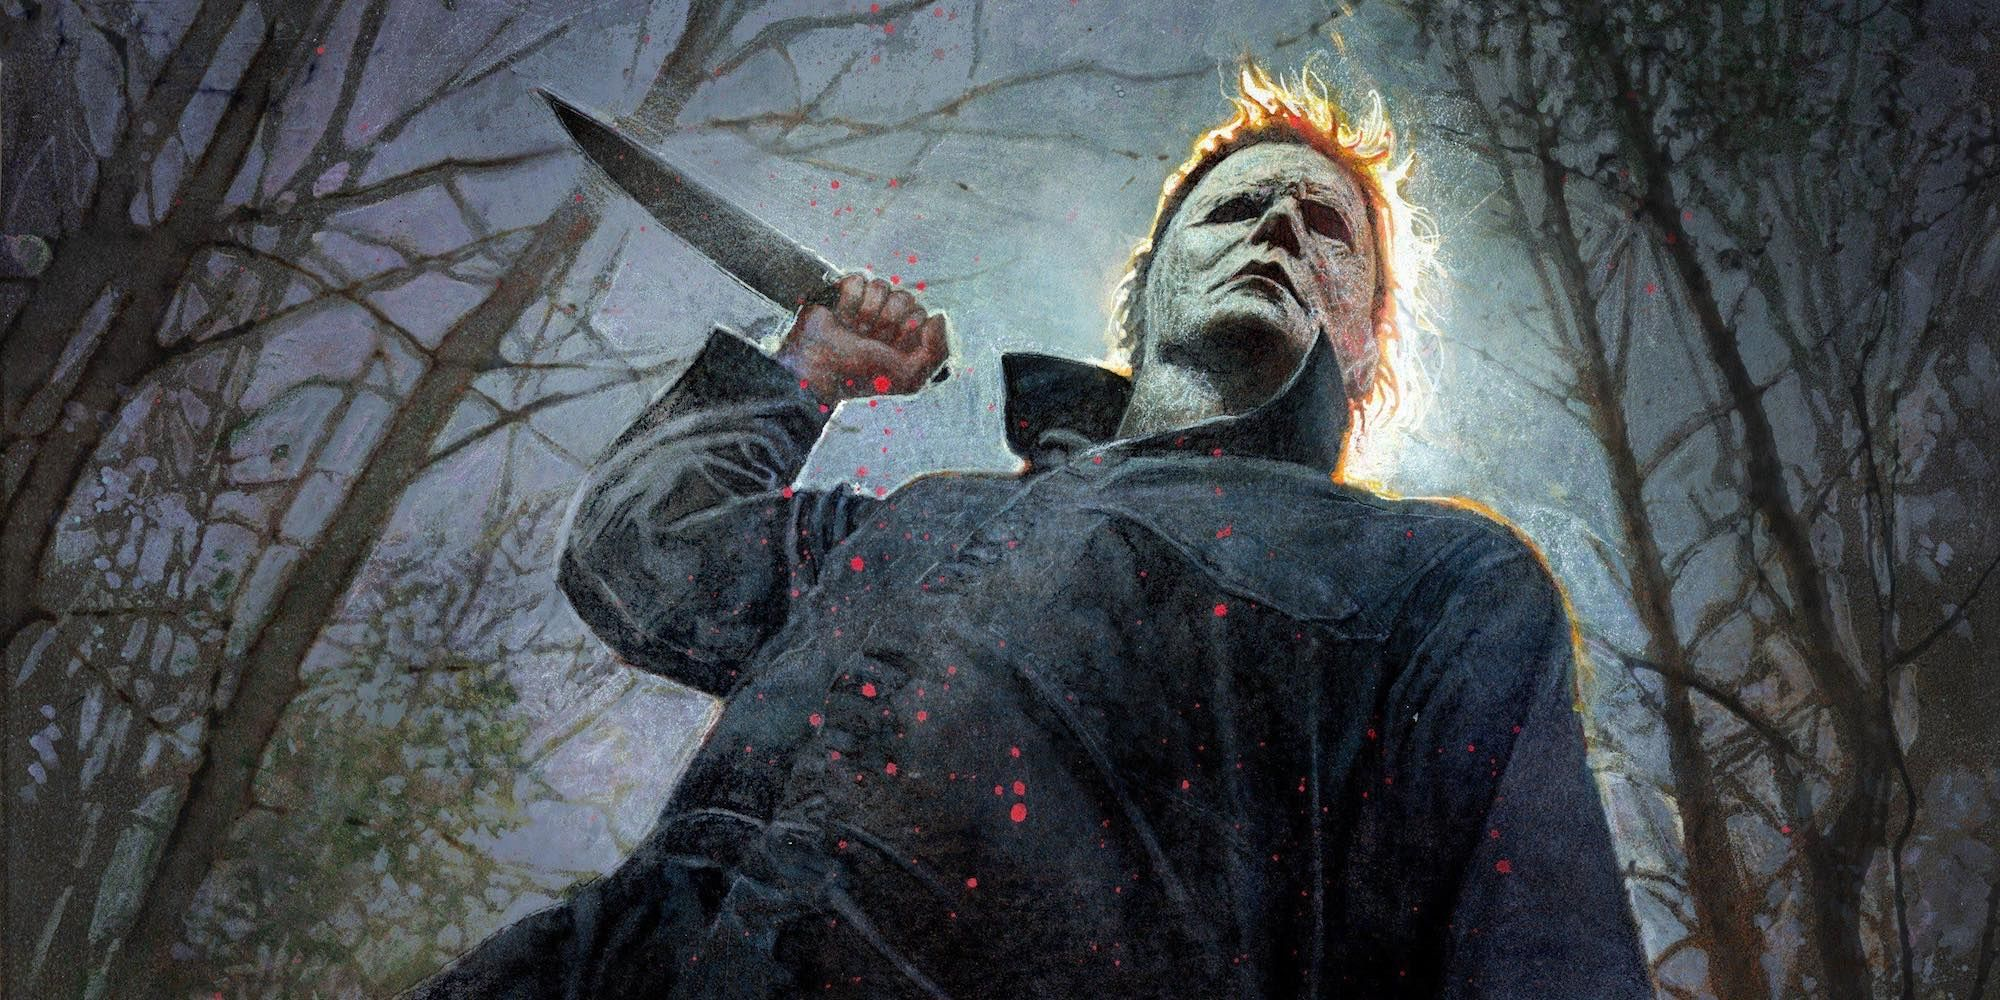 halloween 2018 hits blu-ray in january, new deleted scene revealed